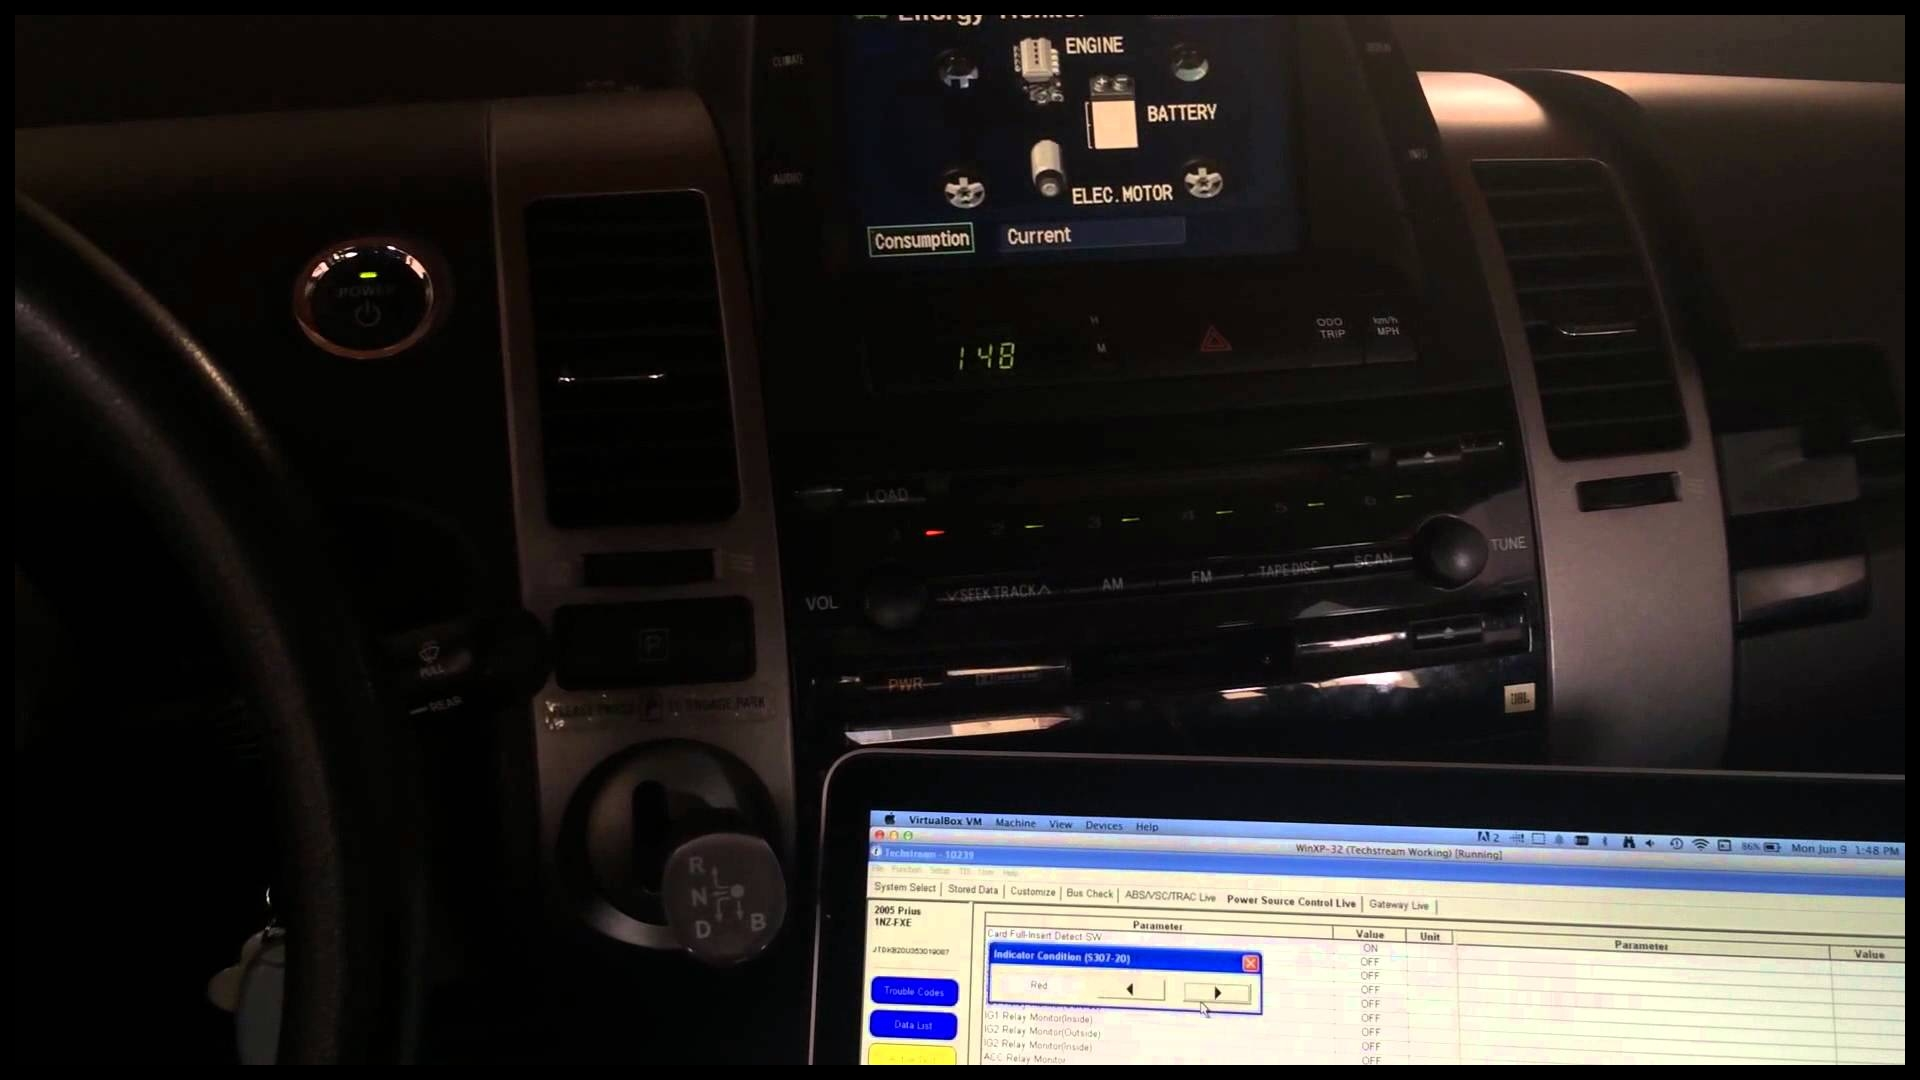 Hacking my Prius Toyota Techstream TIS & Mongoose OBDII cable